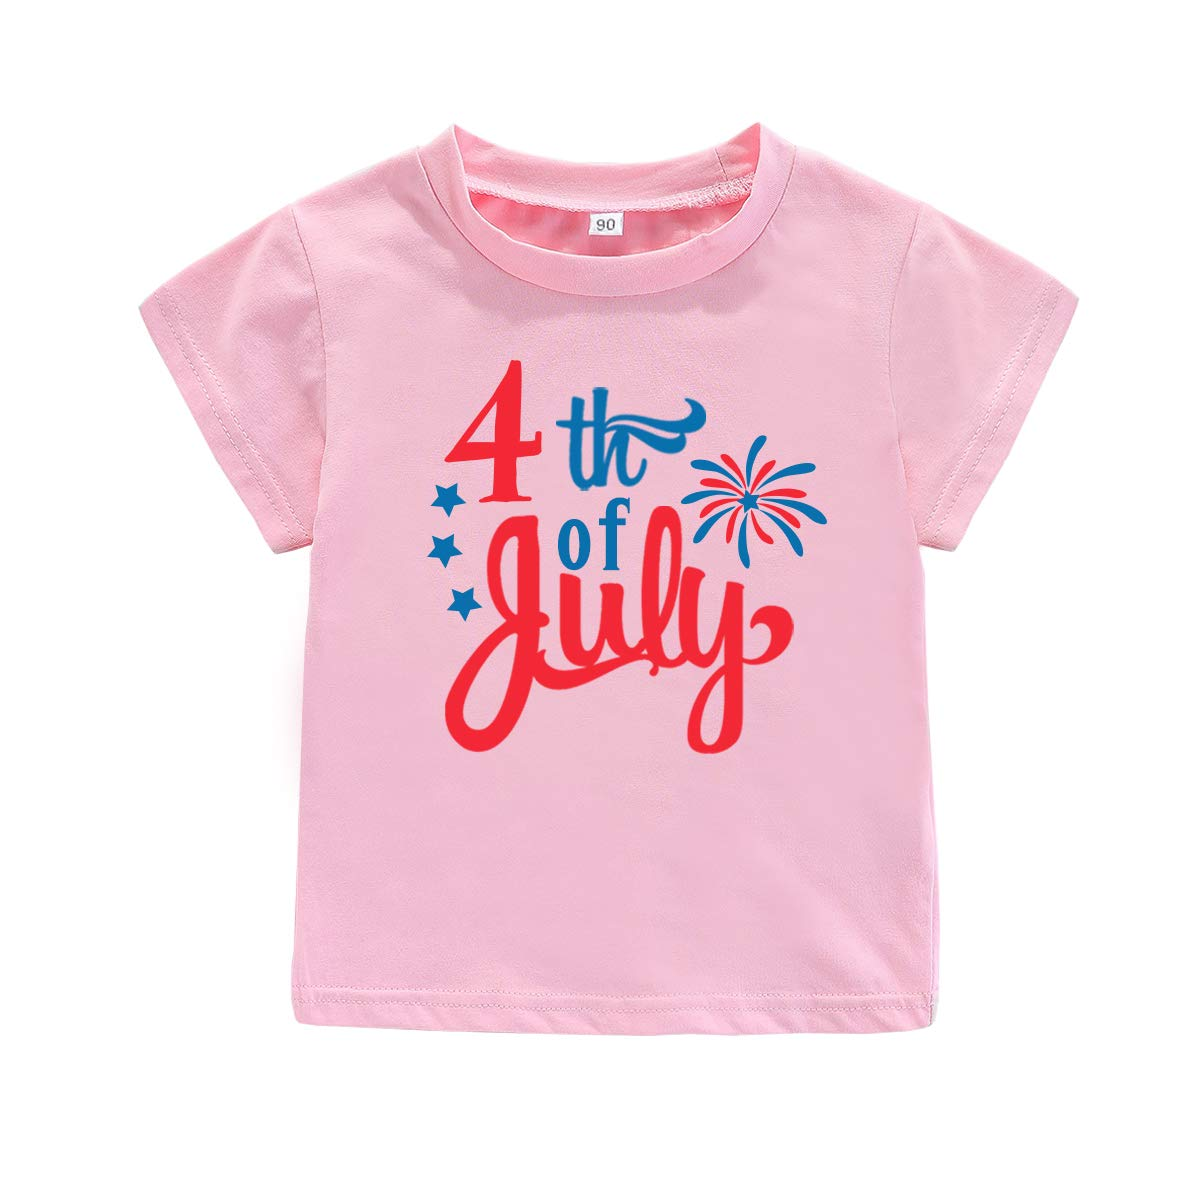 4th of July Toddler Baby T-Shirt Outfit USA Flag Independence Day Tee Kids Patriotic Top